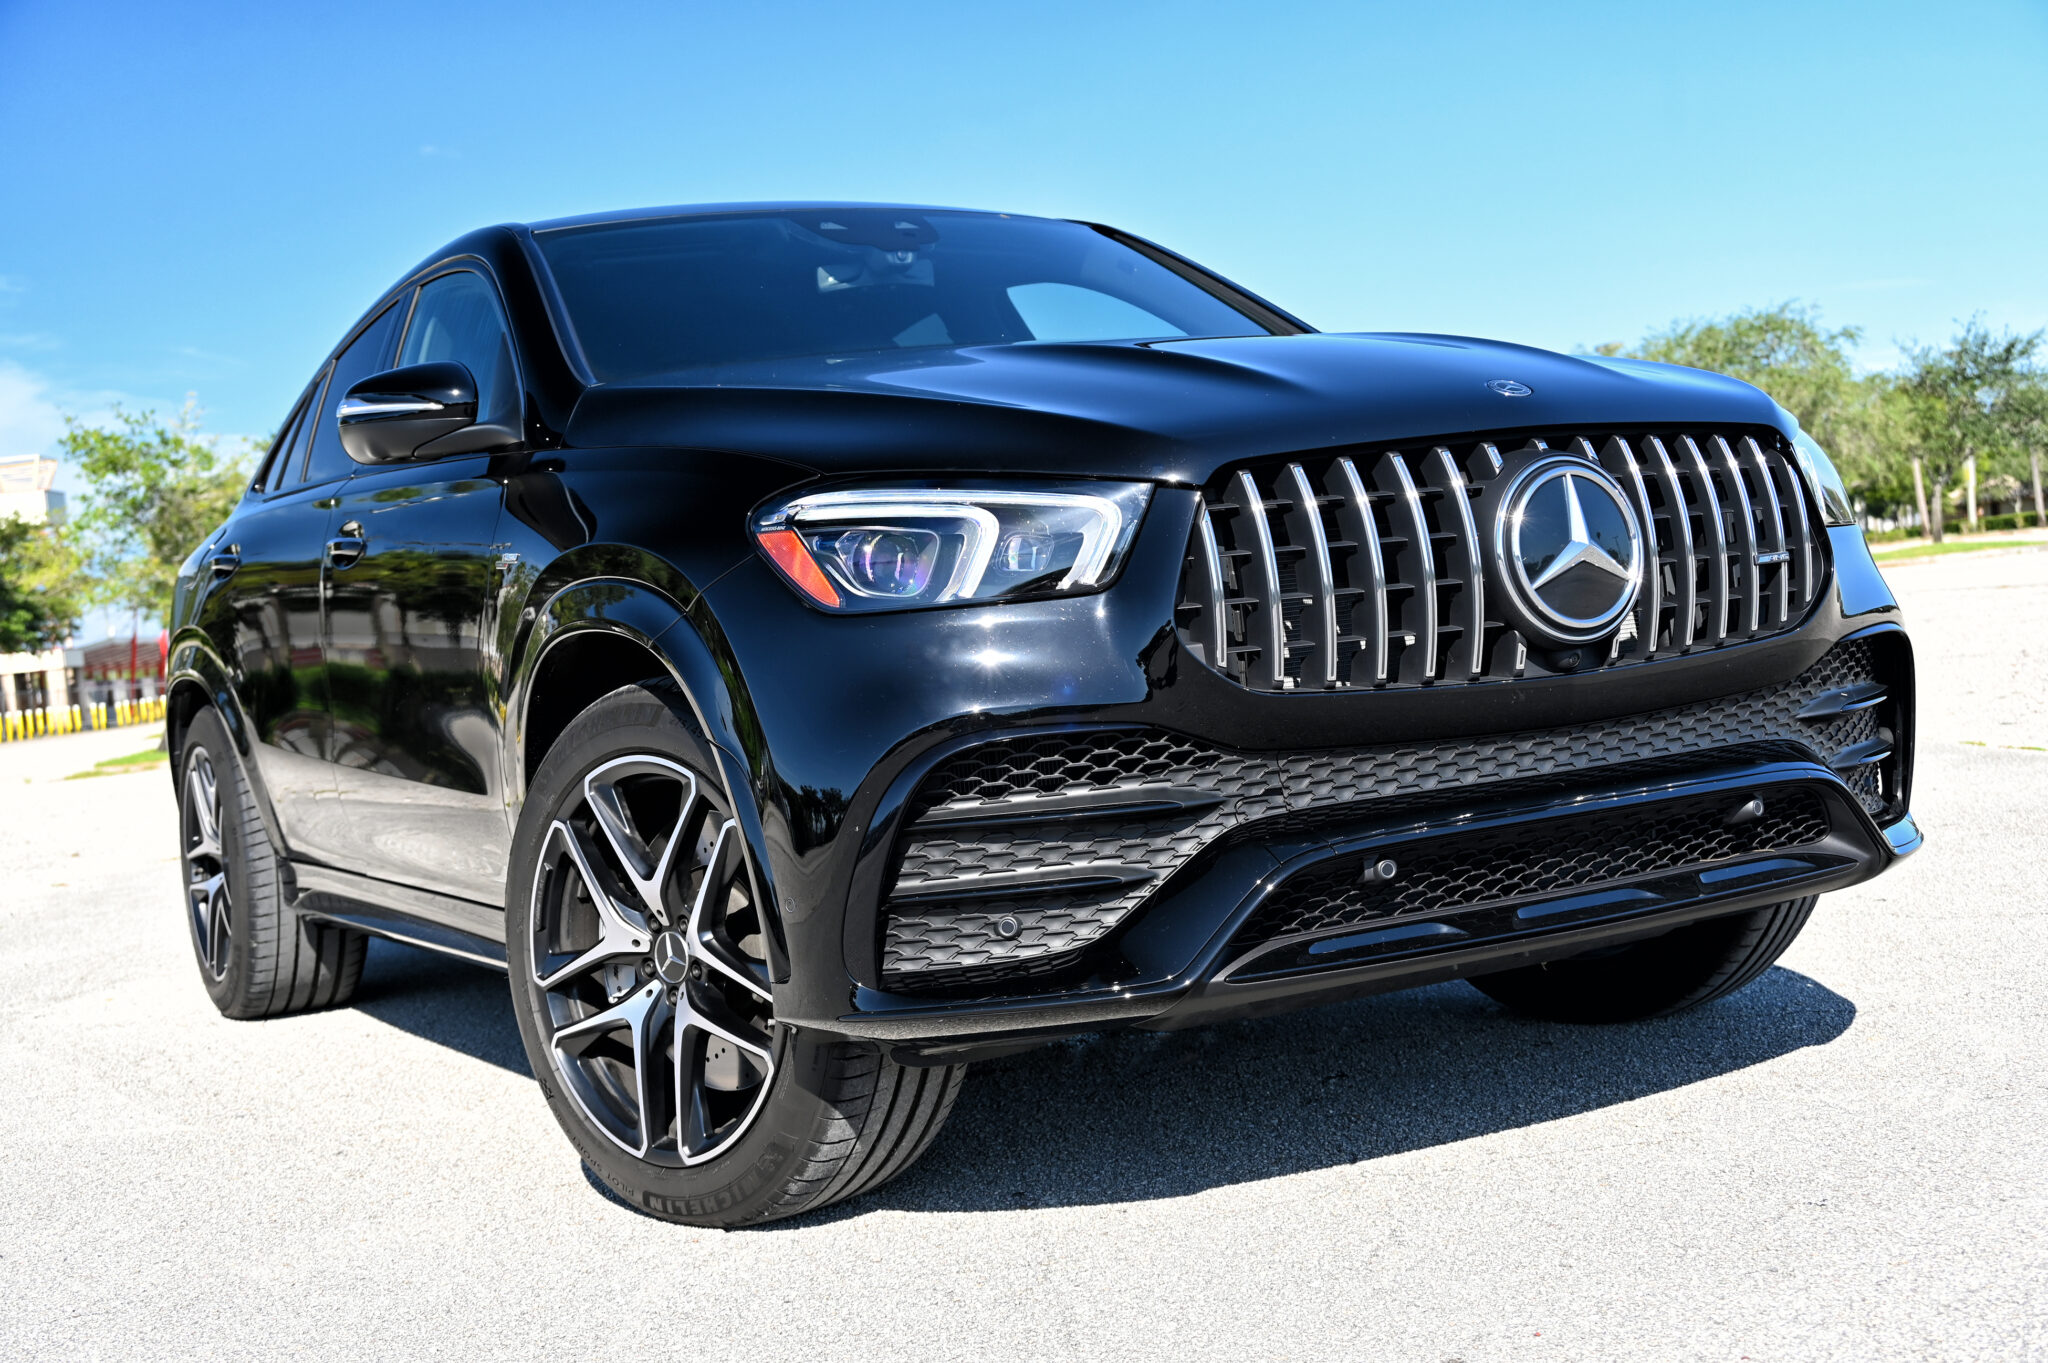 MERCEDES AMG GLE53 COUPE REVIEW